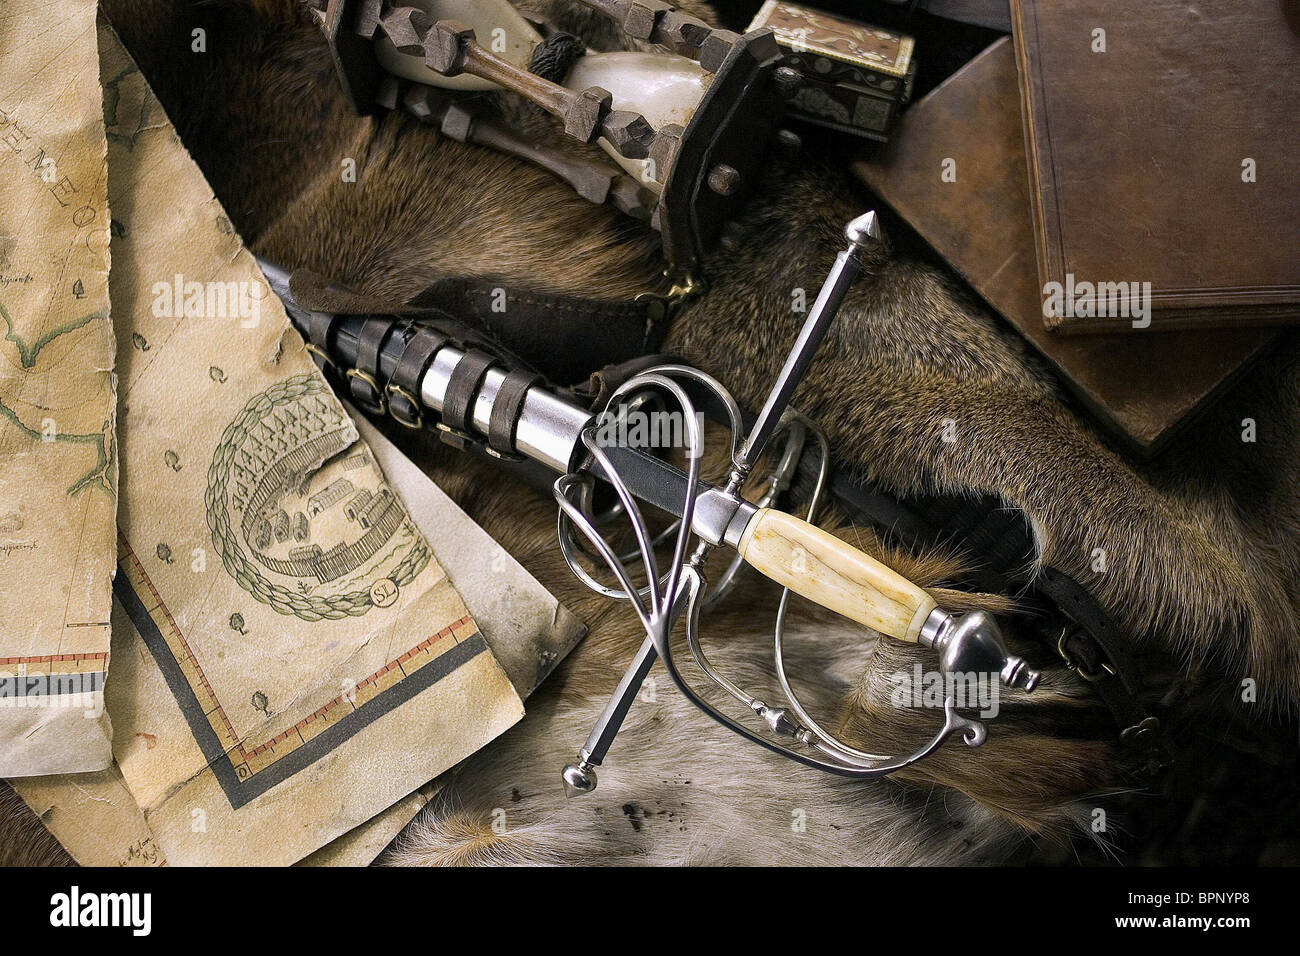 MAP & SWORD PROPS THE NEW WORLD (2005) - Stock Image